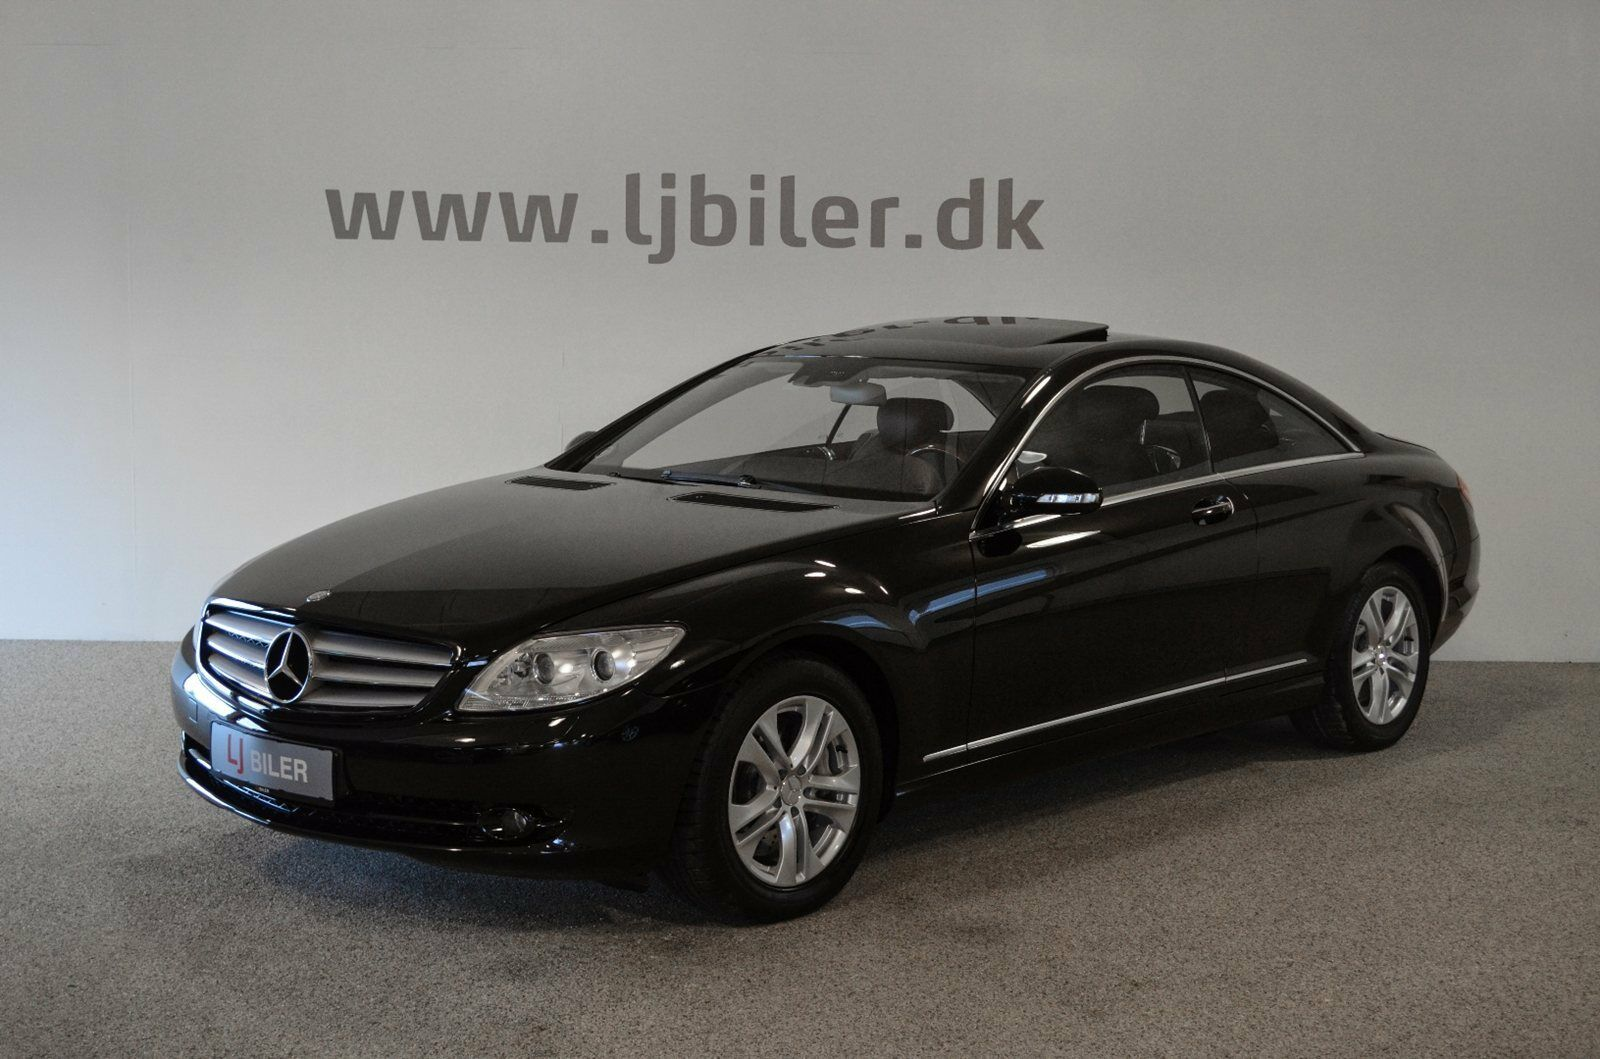 Mercedes CL500 5,5 V8 aut. 2d